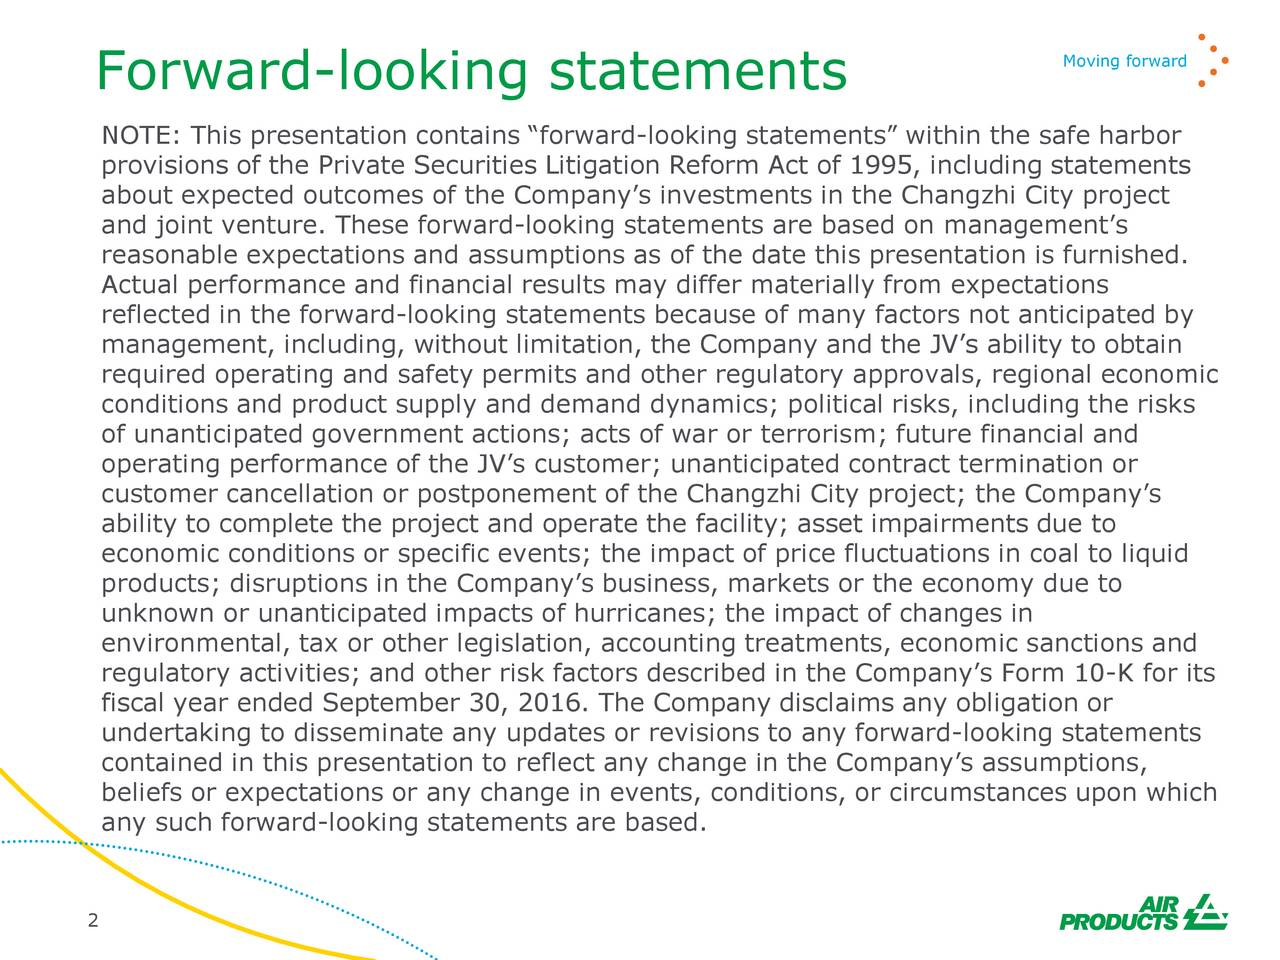 NOTE: This presentation contains forward-looking statements within the safe harbor provisions of the Private Securities Litigation Reform Act of 1995, including statements about expected outcomes of the Companys investments in the Changzhi City project and joint venture. These forward-looking statements are based on managements reasonable expectations and assumptions as of the date this presentation is furnished. Actual performance and financial results may differ materially from expectations reflected in the forward-looking statements because of many factors not anticipated by management, including, without limitation, the Company and the JVs ability to obtain required operating and safety permits and other regulatory approvals, regional economic conditions and product supply and demand dynamics; political risks, including the risks of unanticipated government actions; acts of war or terrorism; future financial and operating performance of the JVs customer; unanticipated contract termination or customer cancellation or postponement of the Changzhi City project; the Companys ability to complete the project and operate the facility; asset impairments due to economic conditions or specific events; the impact of price fluctuations in coal to liquid products; disruptions in the Companys business, markets or the economy due to unknown or unanticipated impacts of hurricanes; the impact of changes in environmental, tax or other legislation, accounting treatments, economic sanctions and regulatory activities; and other risk factors described in the Companys Form 10-K for its fiscal year ended September 30, 2016. The Company disclaims any obligation or undertaking to disseminate any updates or revisions to any forward-looking statements contained in this presentation to reflect any change in the Companys assumptions, beliefs or expectations or any change in events, conditions, or circumstances upon which any such forward-looking statements are based. 2